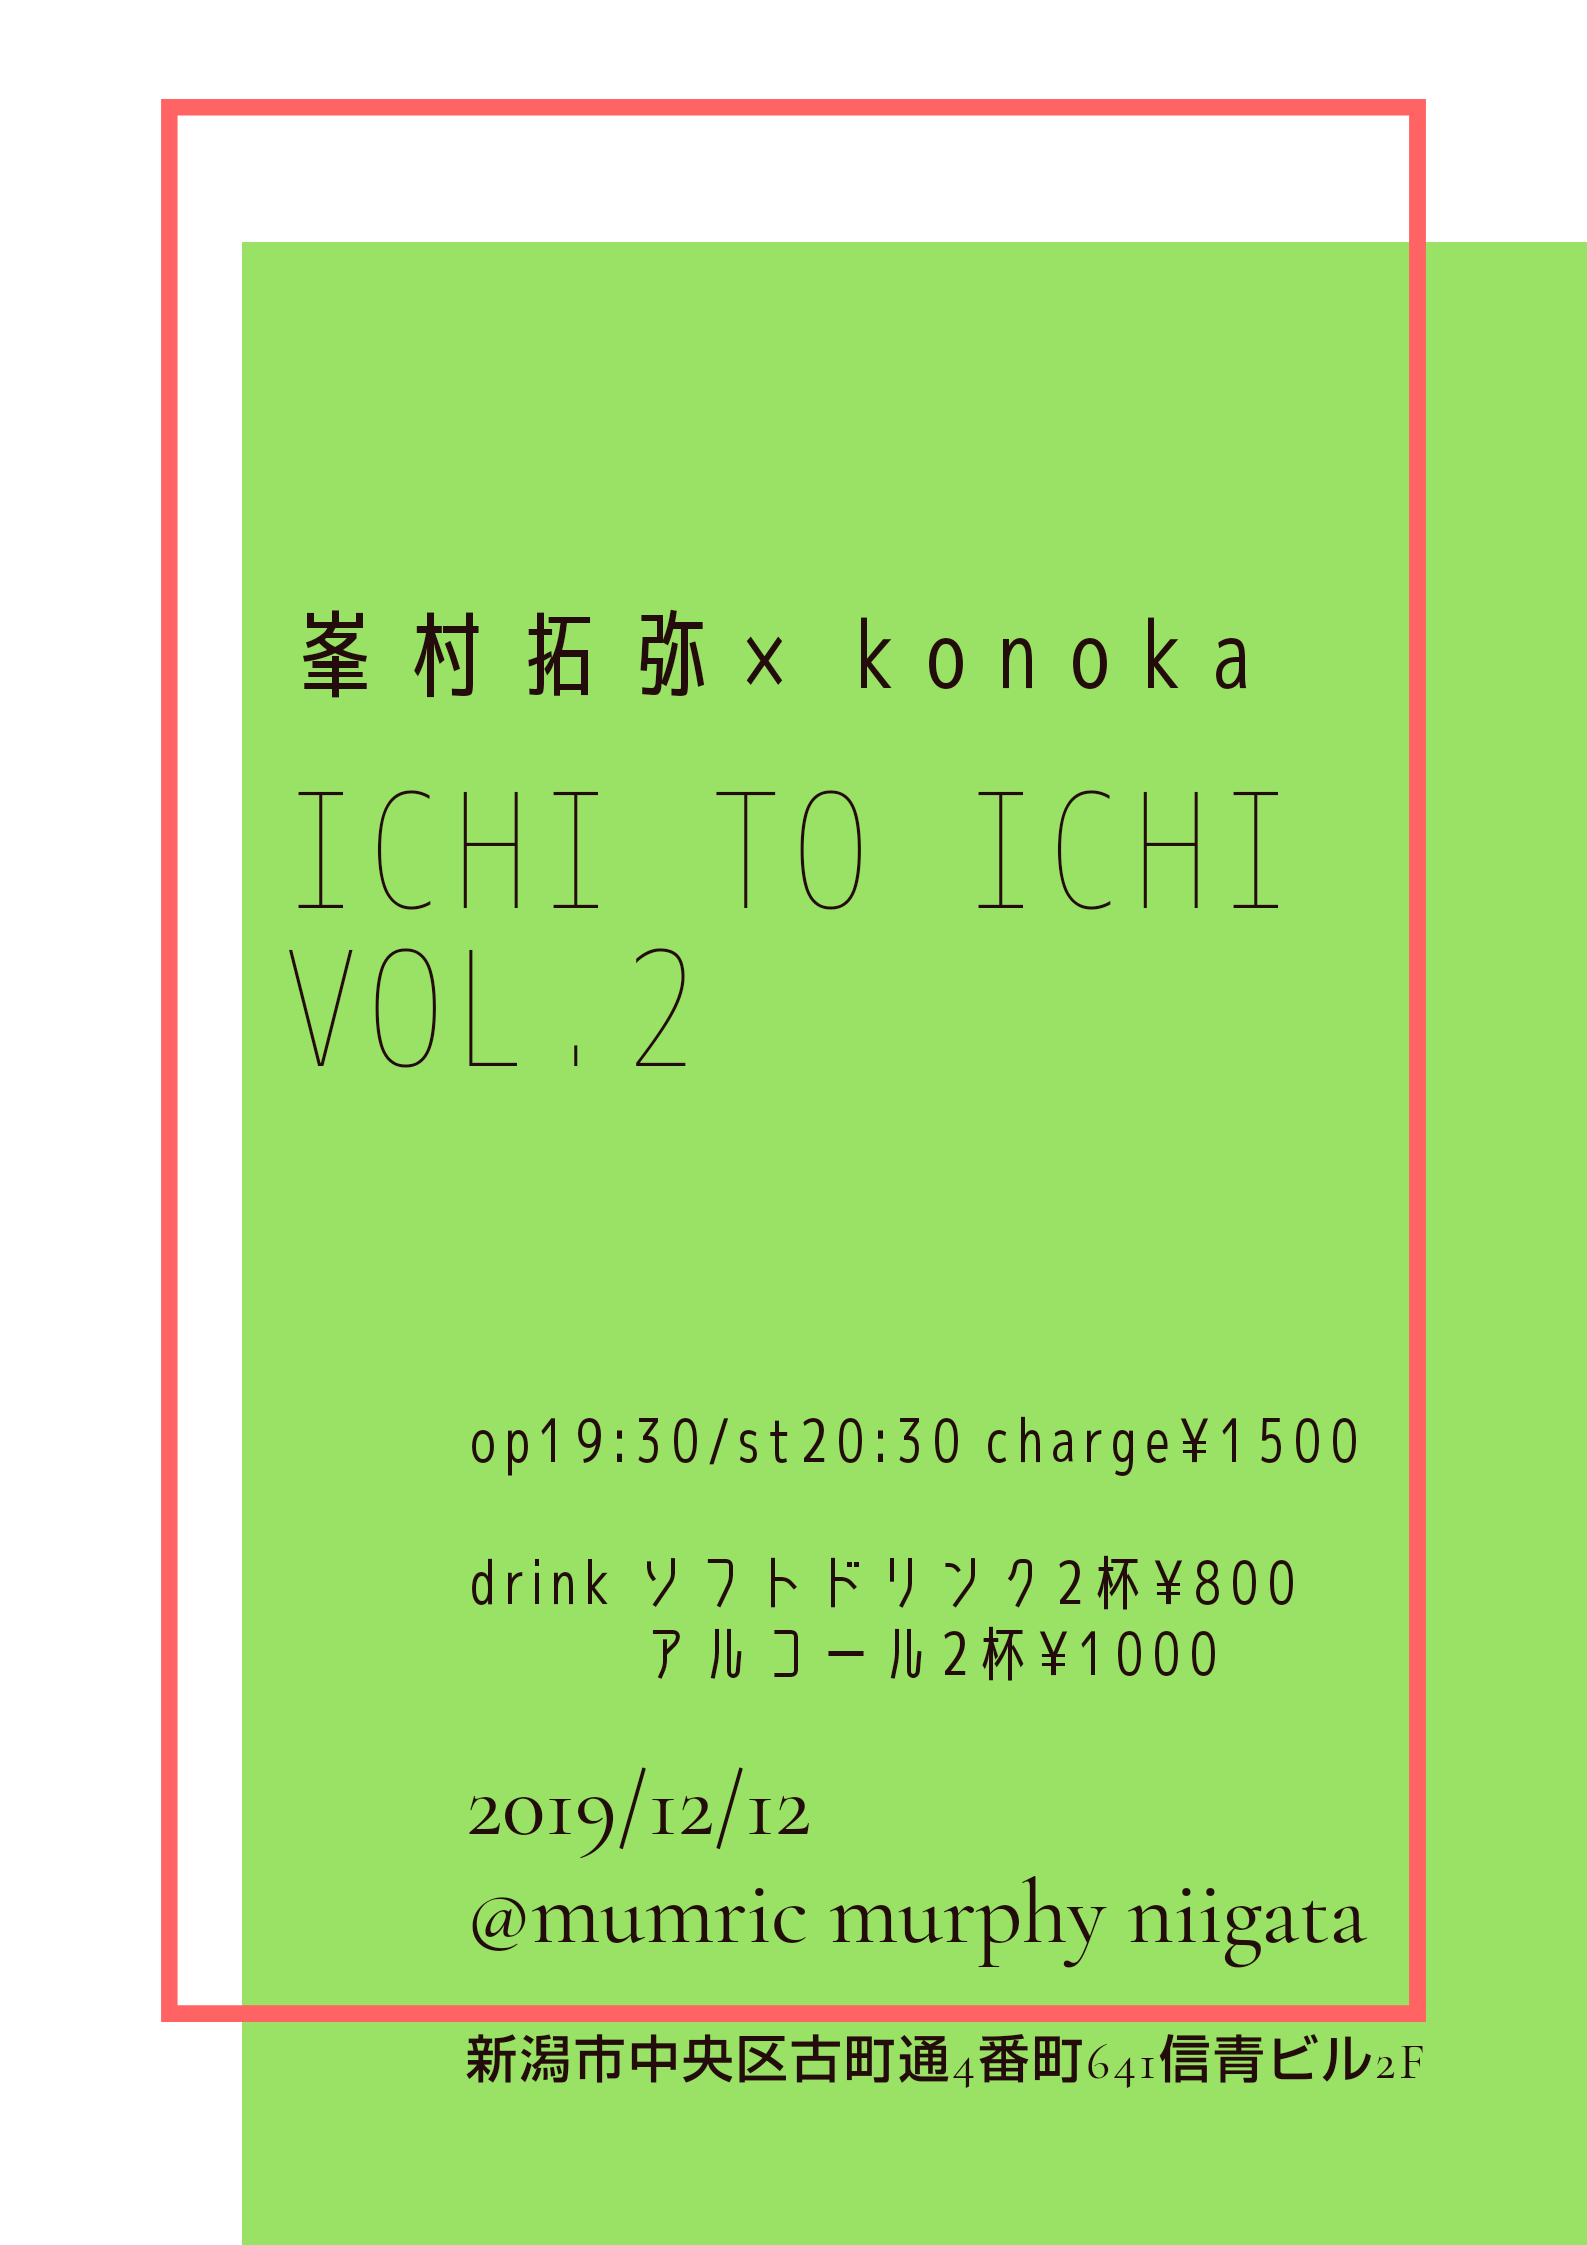 「ICHI TO ICHI vol.2」